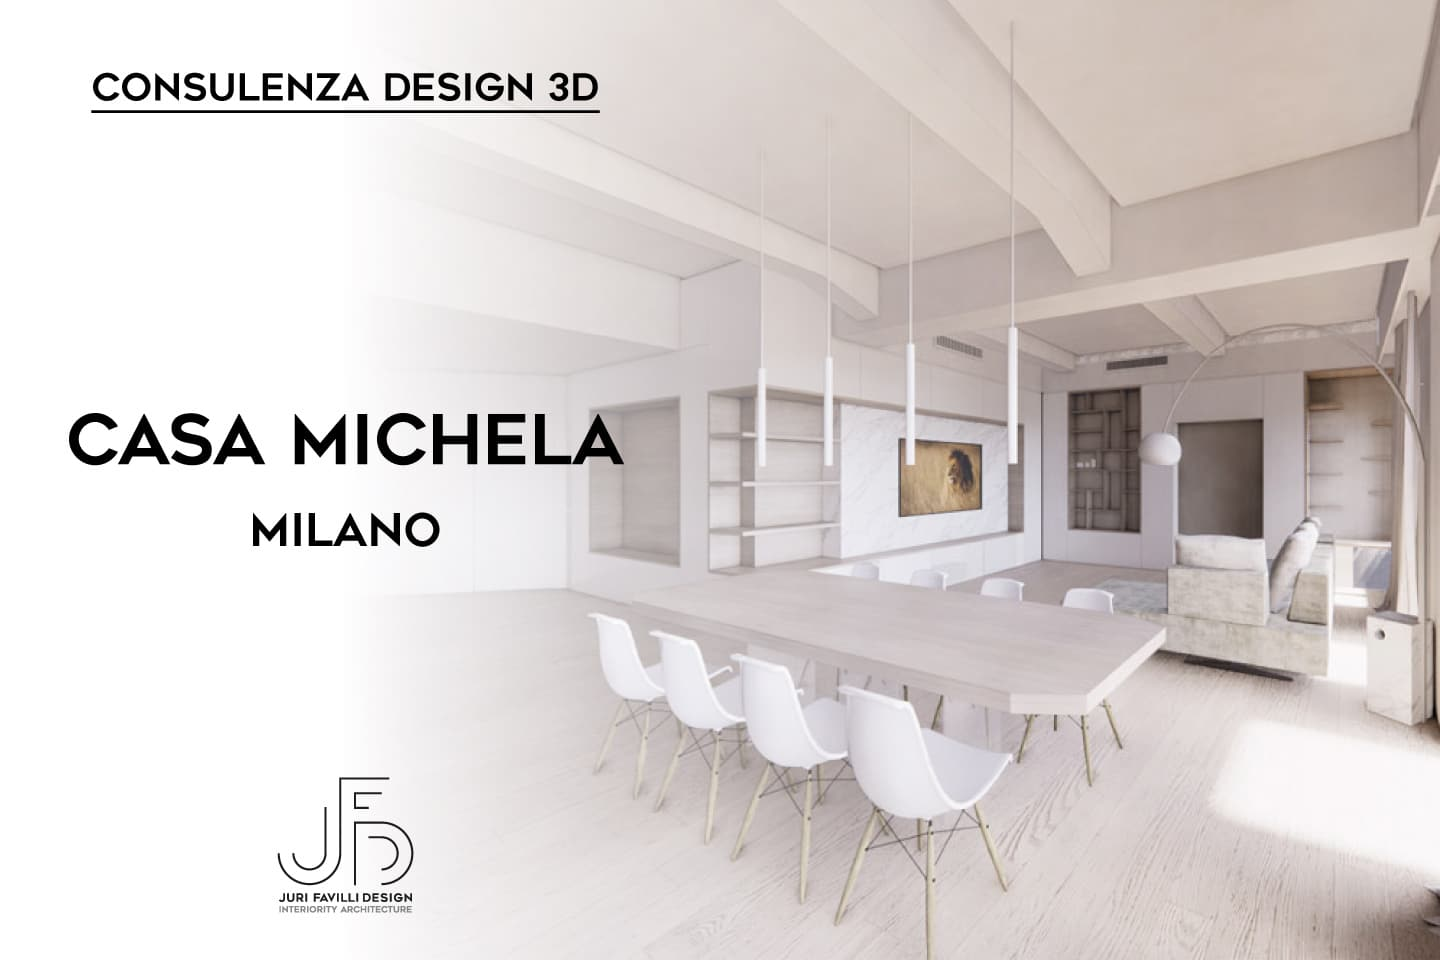 cover-consulenza-design-michela2